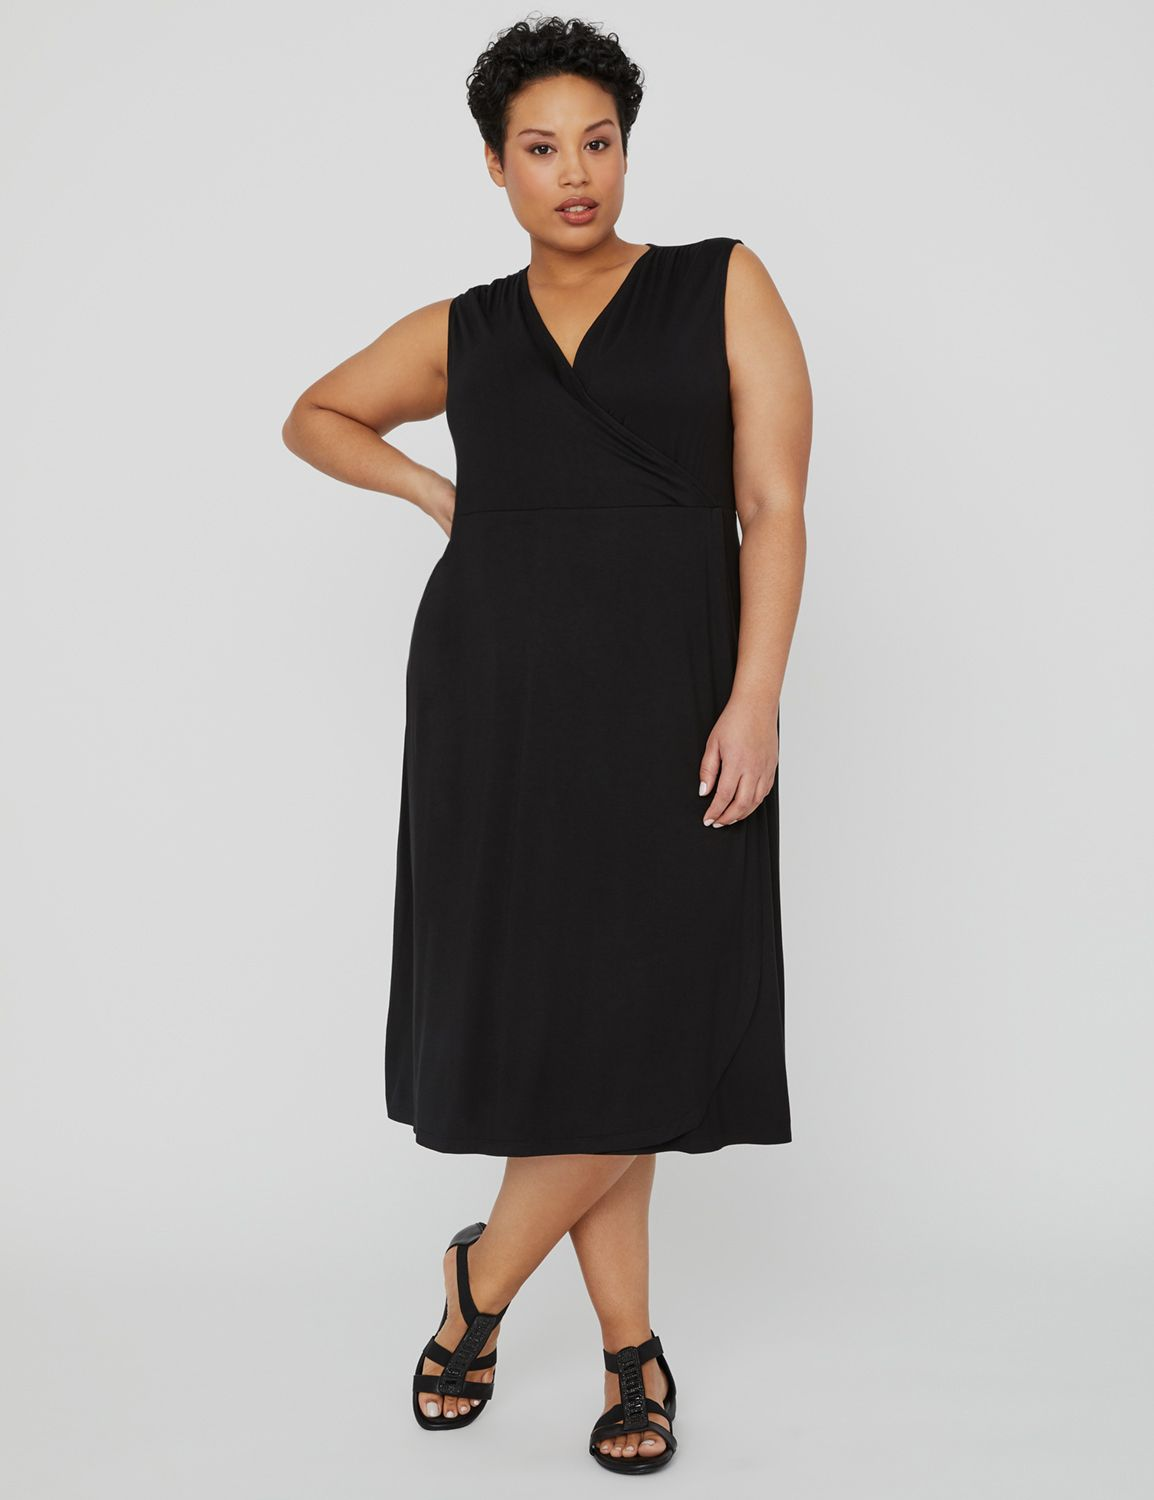 Riverview Wrap Dress 1088151 Vneck Front and Back Maxi E MP-300102361